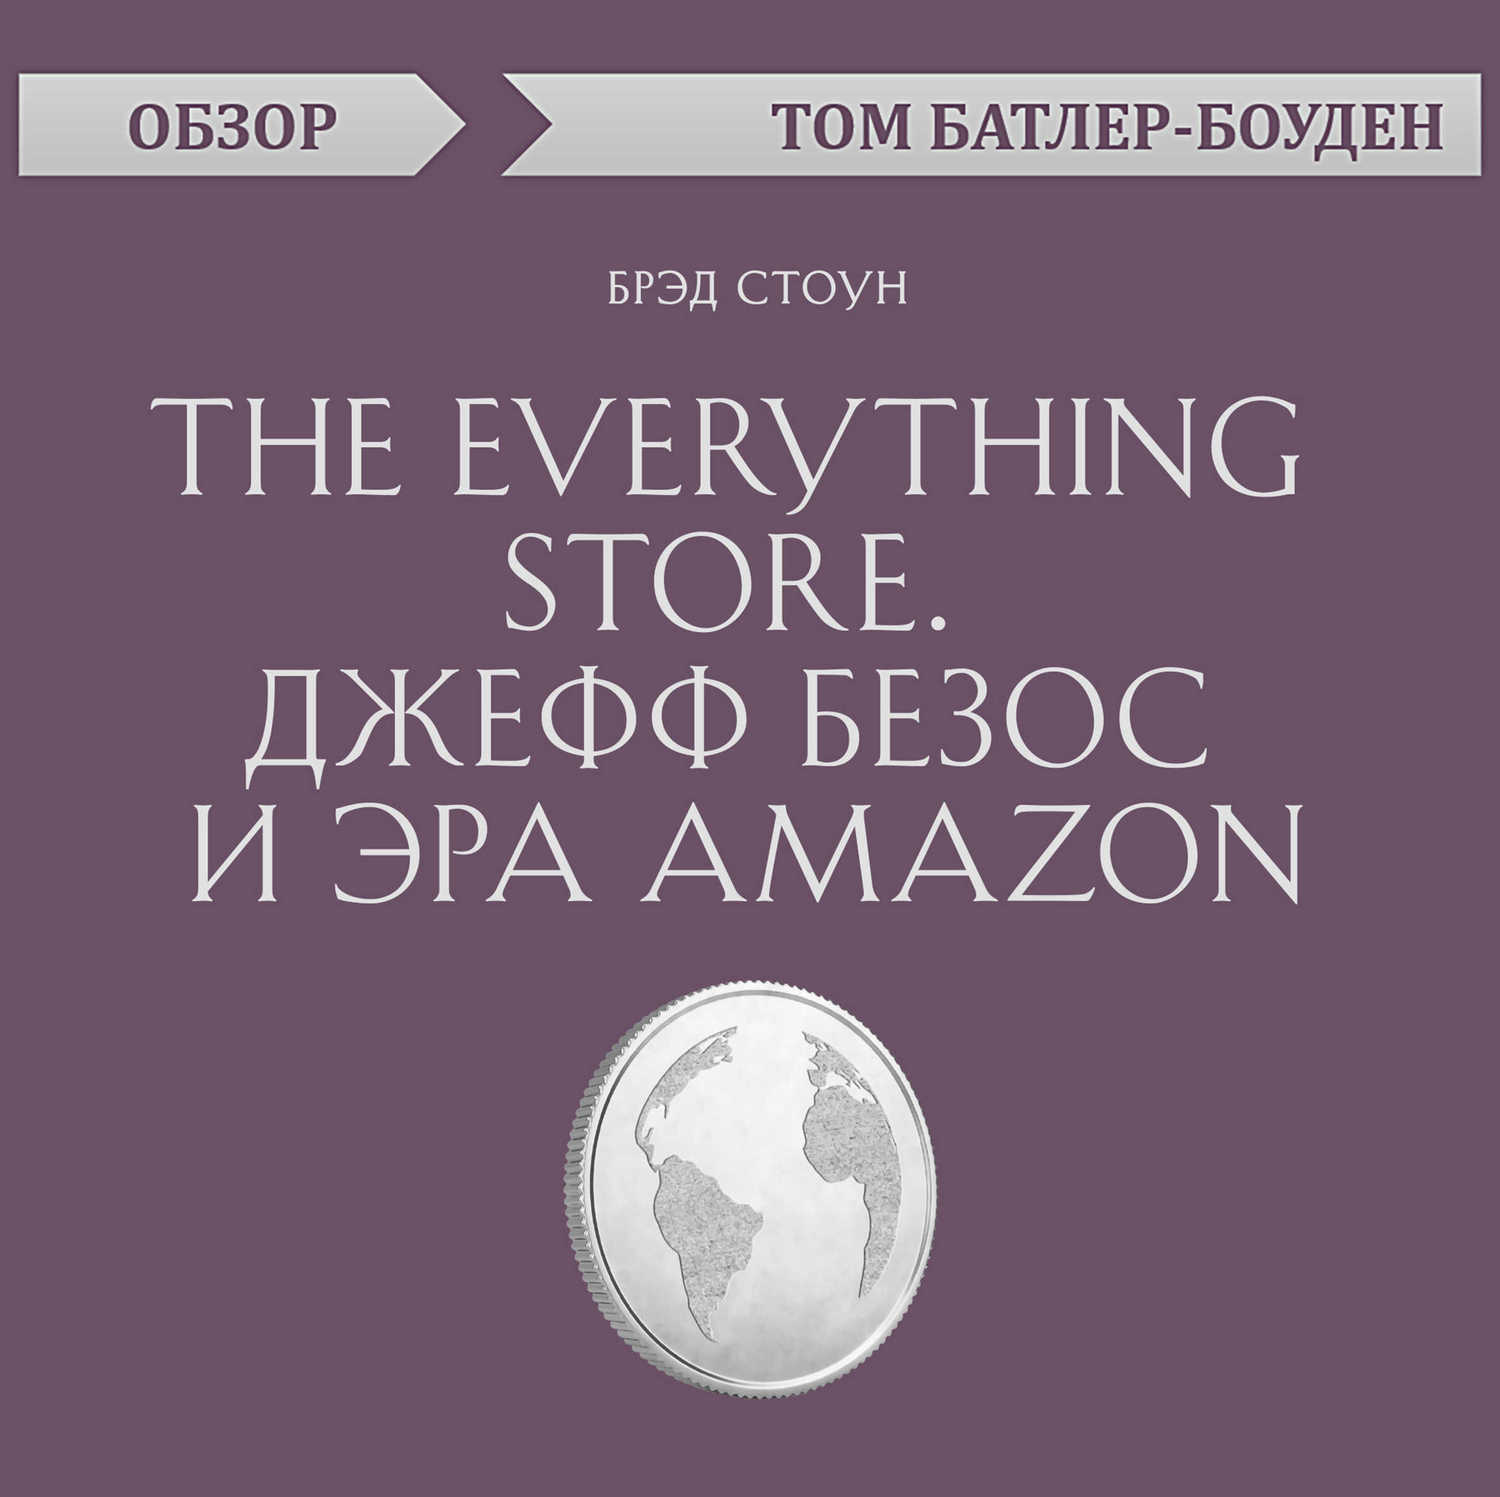 The Everything store. Джефф Безос и эра Amazon. Брэд Стоун (обзор)